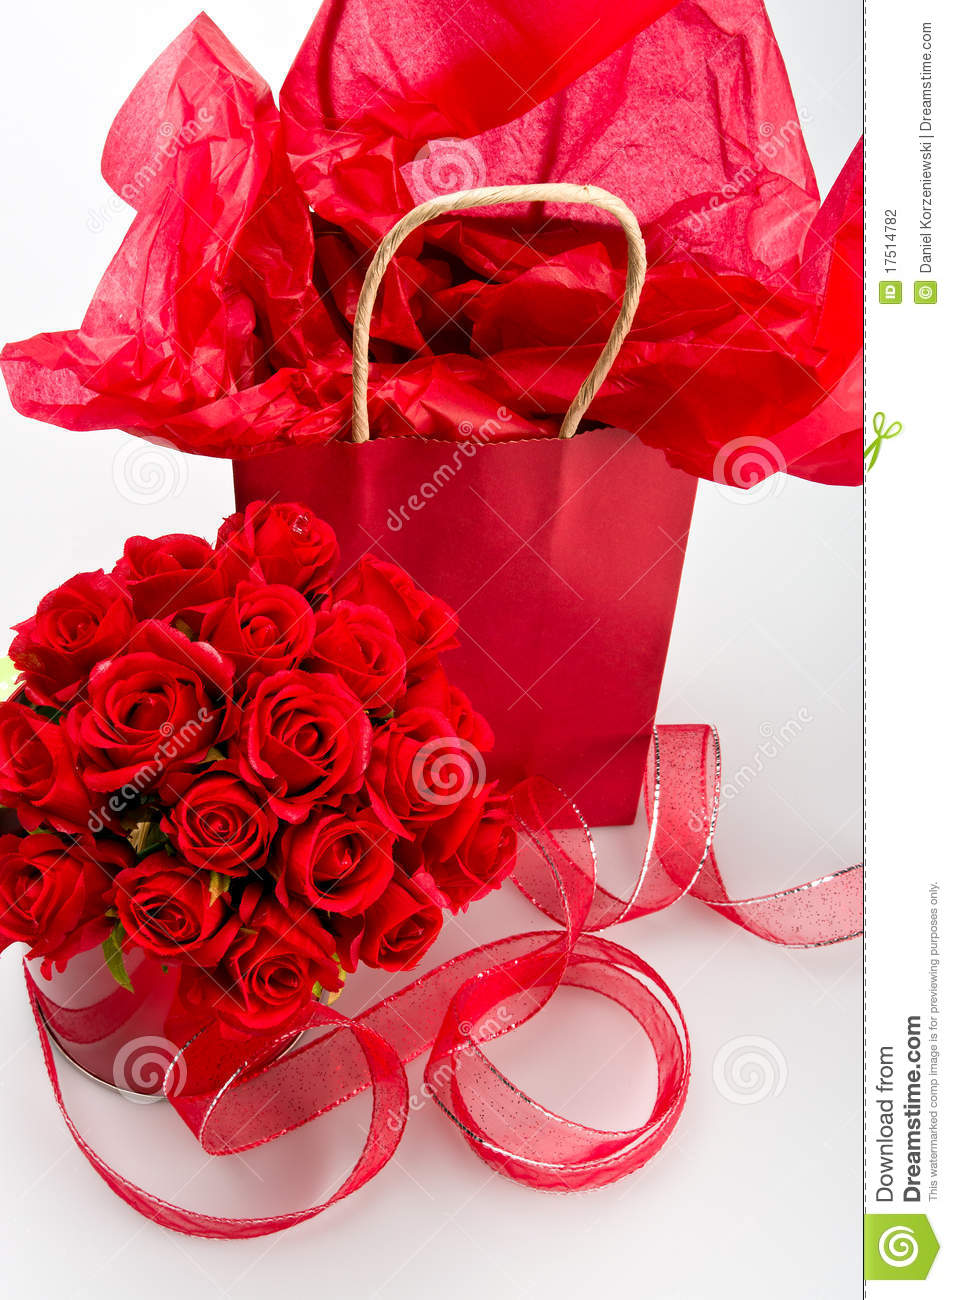 601cfe387aaf5 St. Valentine gifts stock photo. Image of paper, give - 17514782